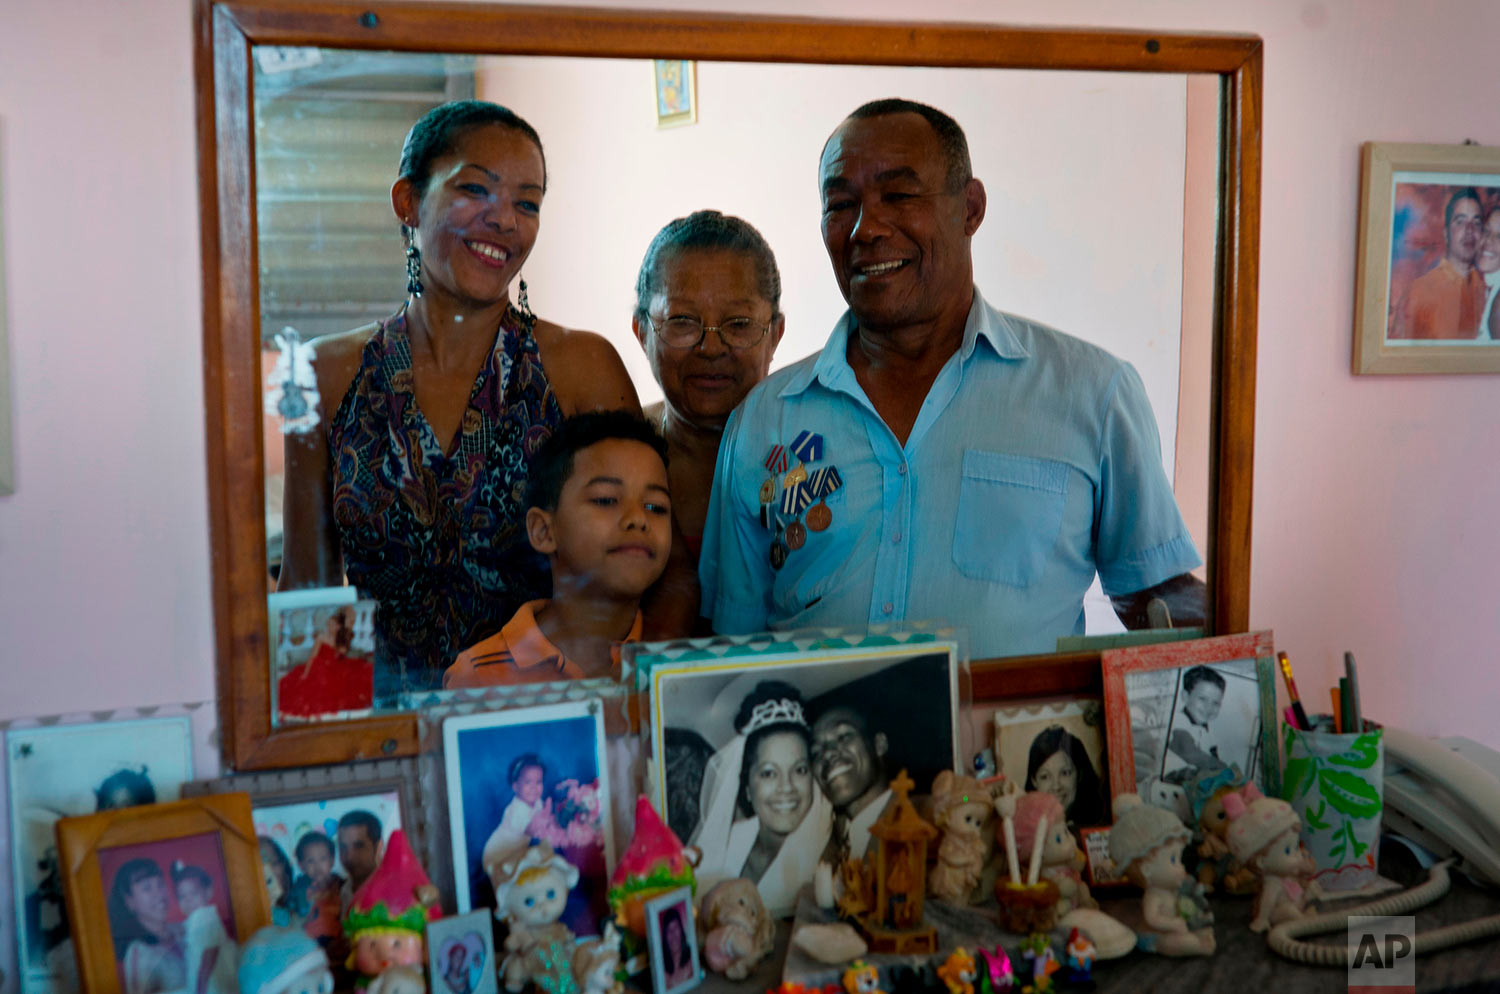 """In this April 14, 2018 photo, Amable Lopez, right, a Angola war veteran, poses with his family in Havana, Cuba. Lopez, a 69-year-old retiree, quit his university studies to join the team that built the famed, Soviet-style Alamar buildings. The former carpenter, firefighter and oil refinery worker said that compared to his generation's time, there is more development in Cuba and youths have everything they need to improve their lives. """"They need to improve the economy, raise salaries, lower prices. There are things that can be improved. Let's see what happens,"""" Lopez said. (AP Photo/Ramon Espinosa)"""